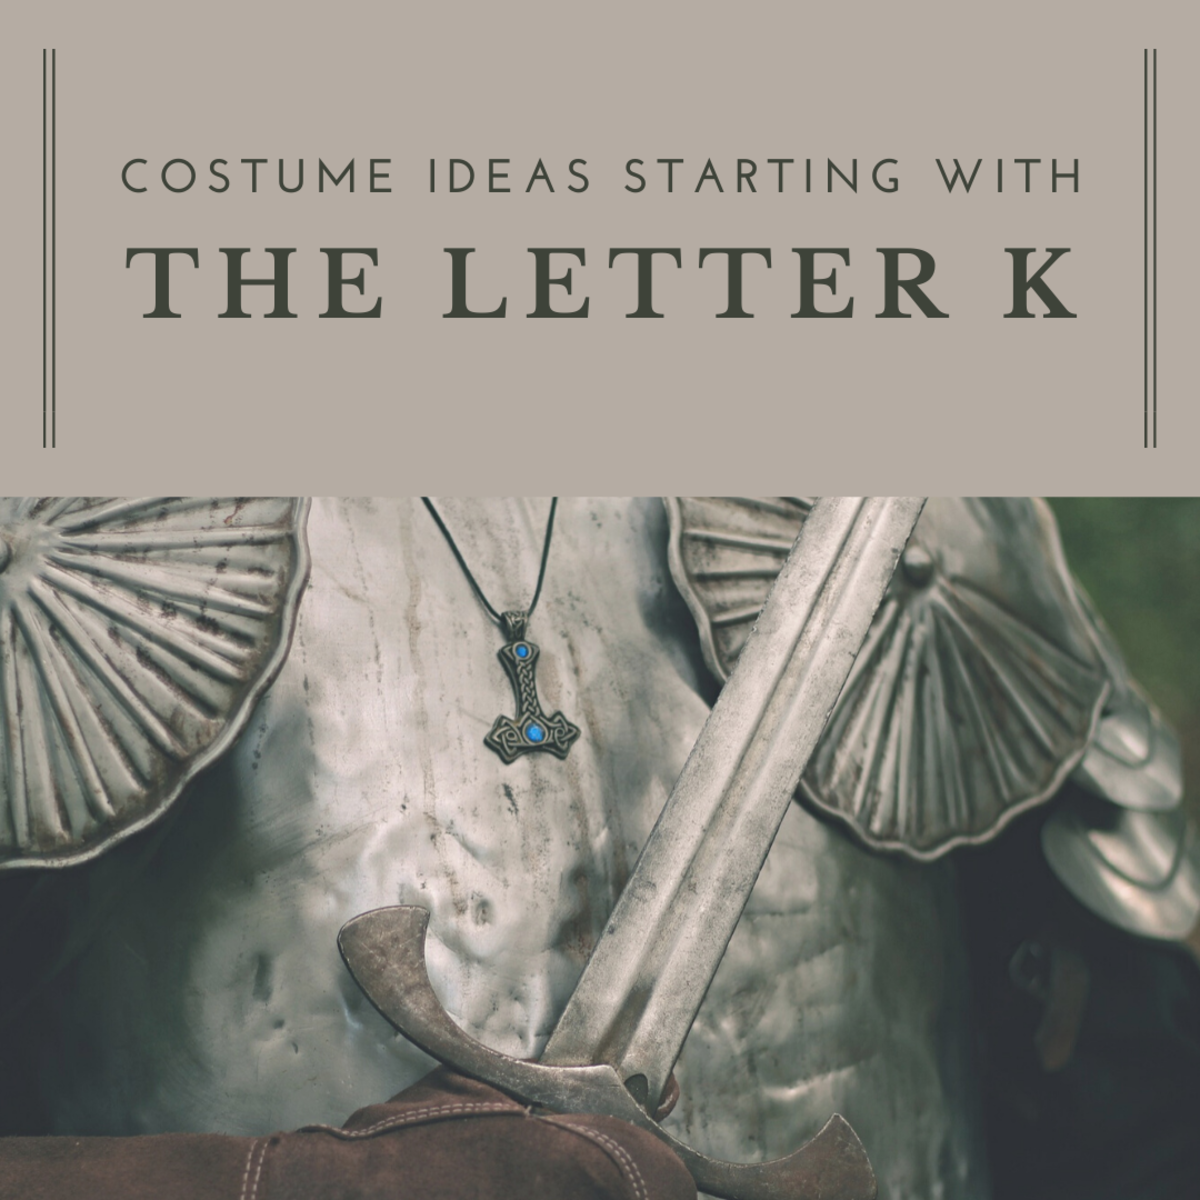 Hosting or attending a themed party where guests need to dress up as a person or thing that starts with the letter K? Here are some ideas to inspire you!